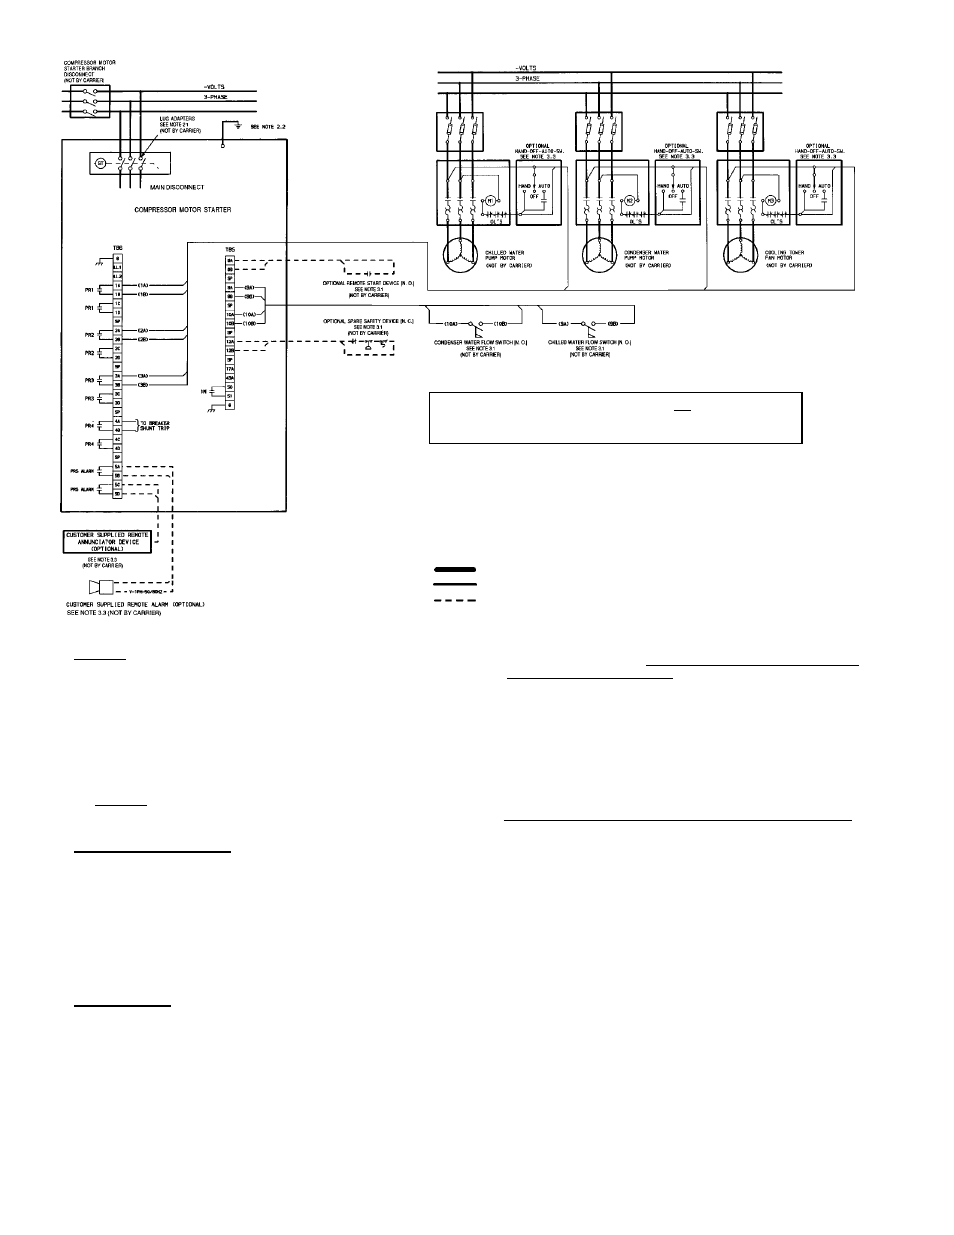 carrier hermetic centrifugal liquid chillers 19xr page32 carrier 30gx chiller wiring diagram gandul 45 77 79 119 Electric Furnace Wiring Diagrams at soozxer.org